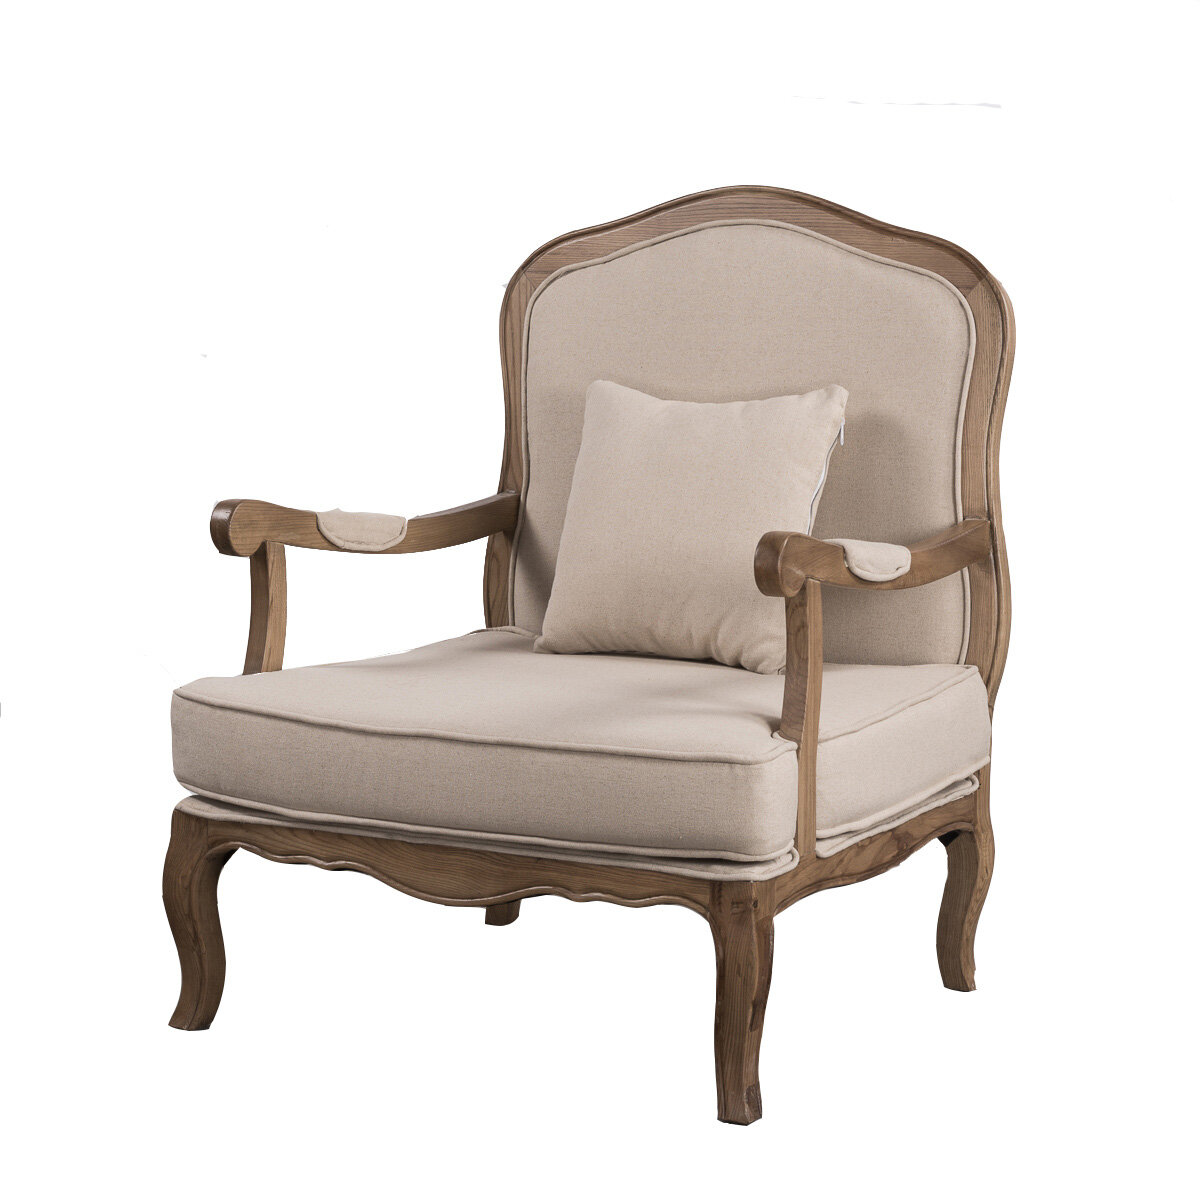 Single Chairs French Provincial Vintage Furniture Single Sofa With Arm